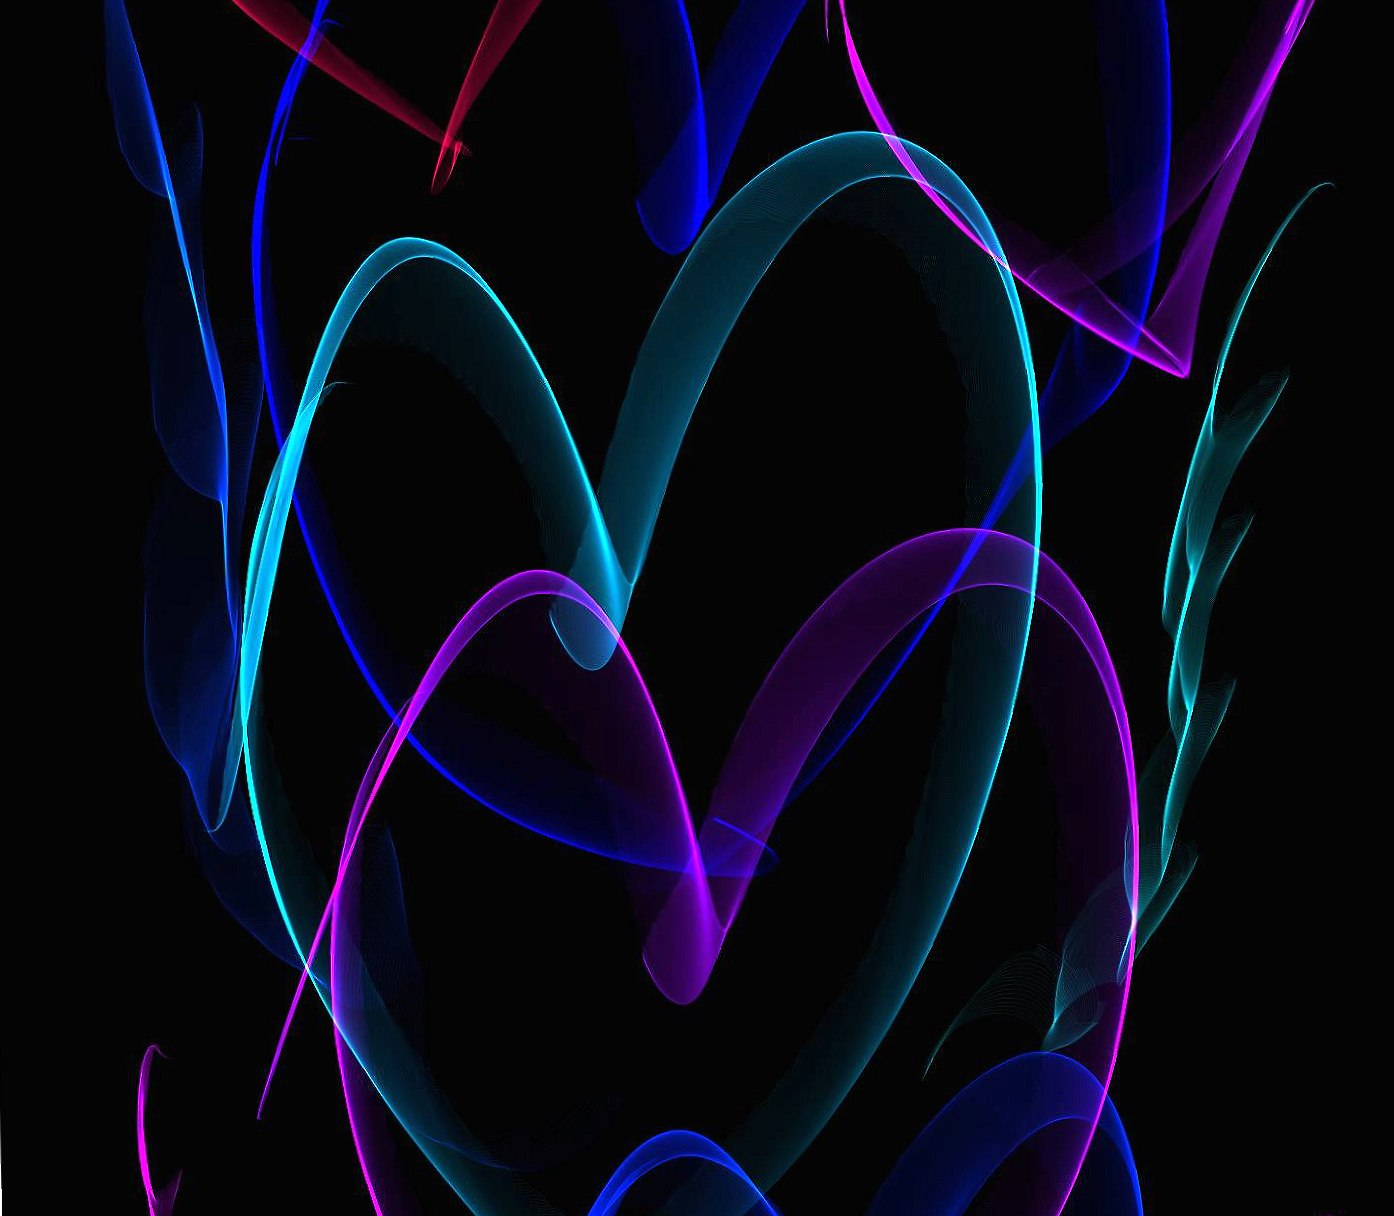 Neon hearts wallpapers HD quality